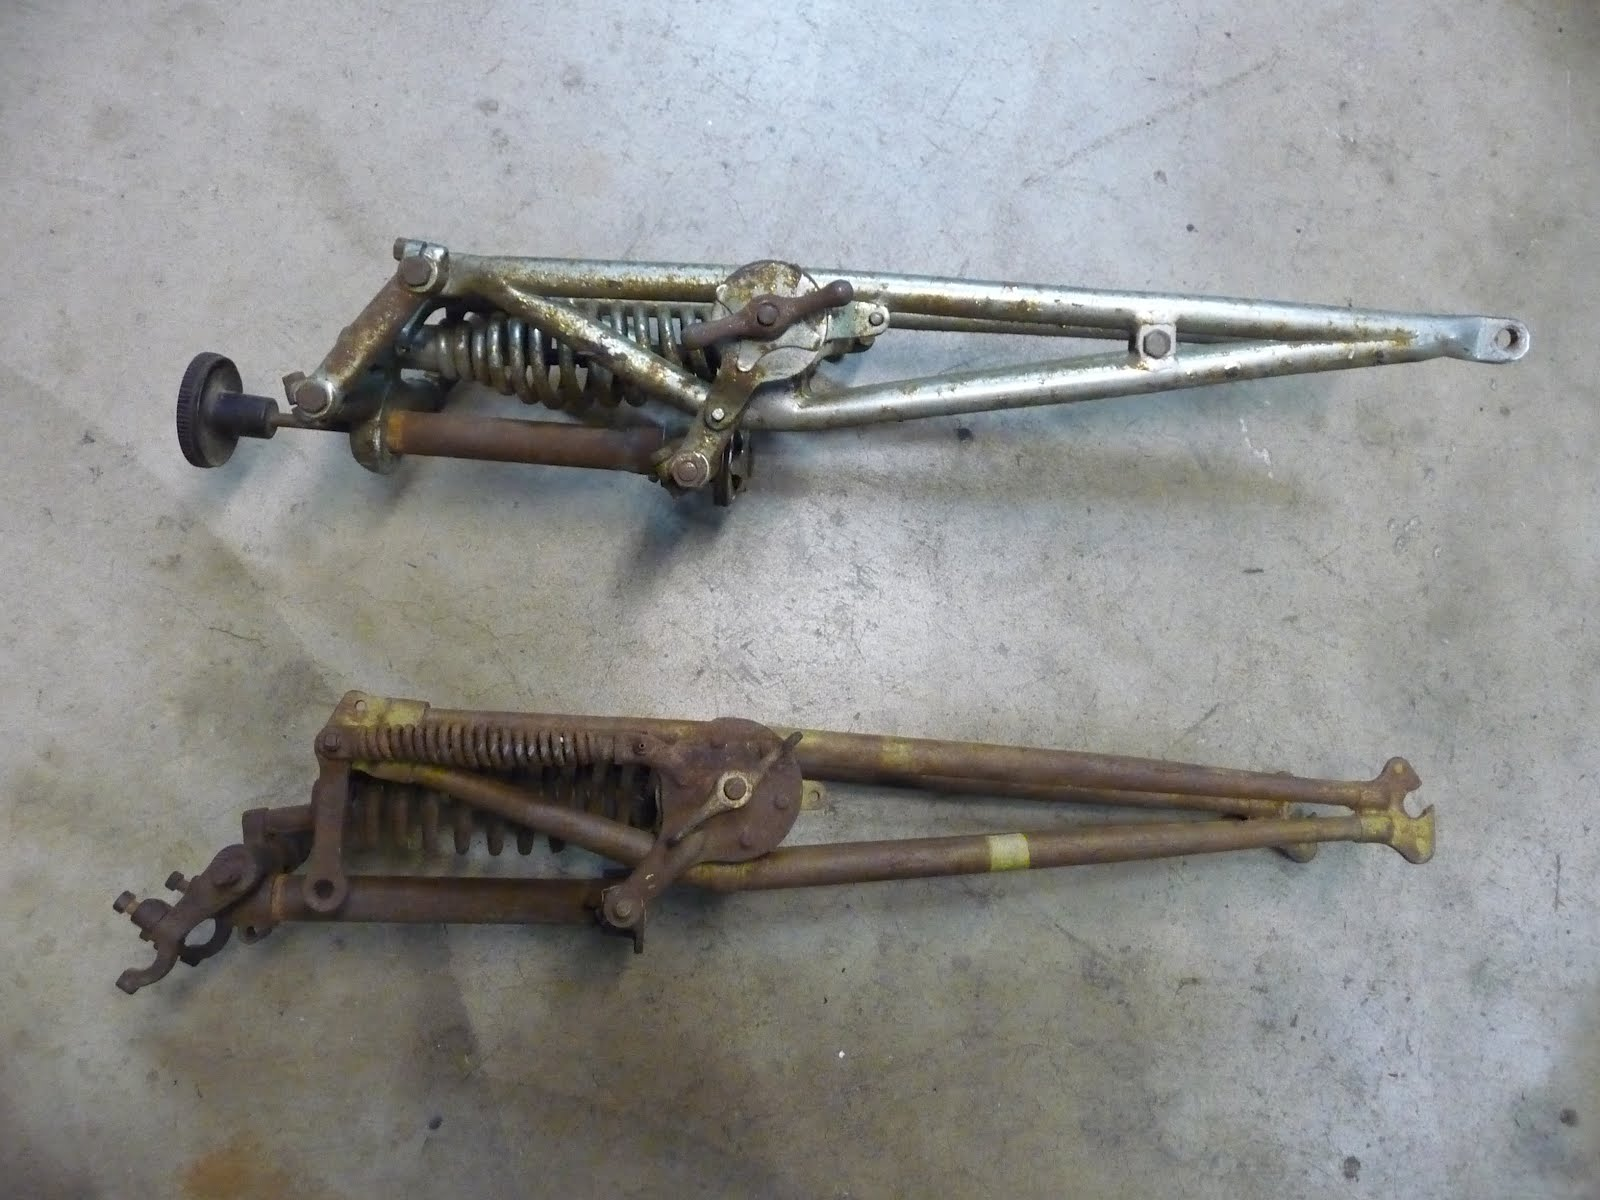 ikes fork mature personals Find great deals on dirt bikes for sale in the want ad bargain prices on used, private owner off road & dirt bikes for sale in ny, ma and vt.